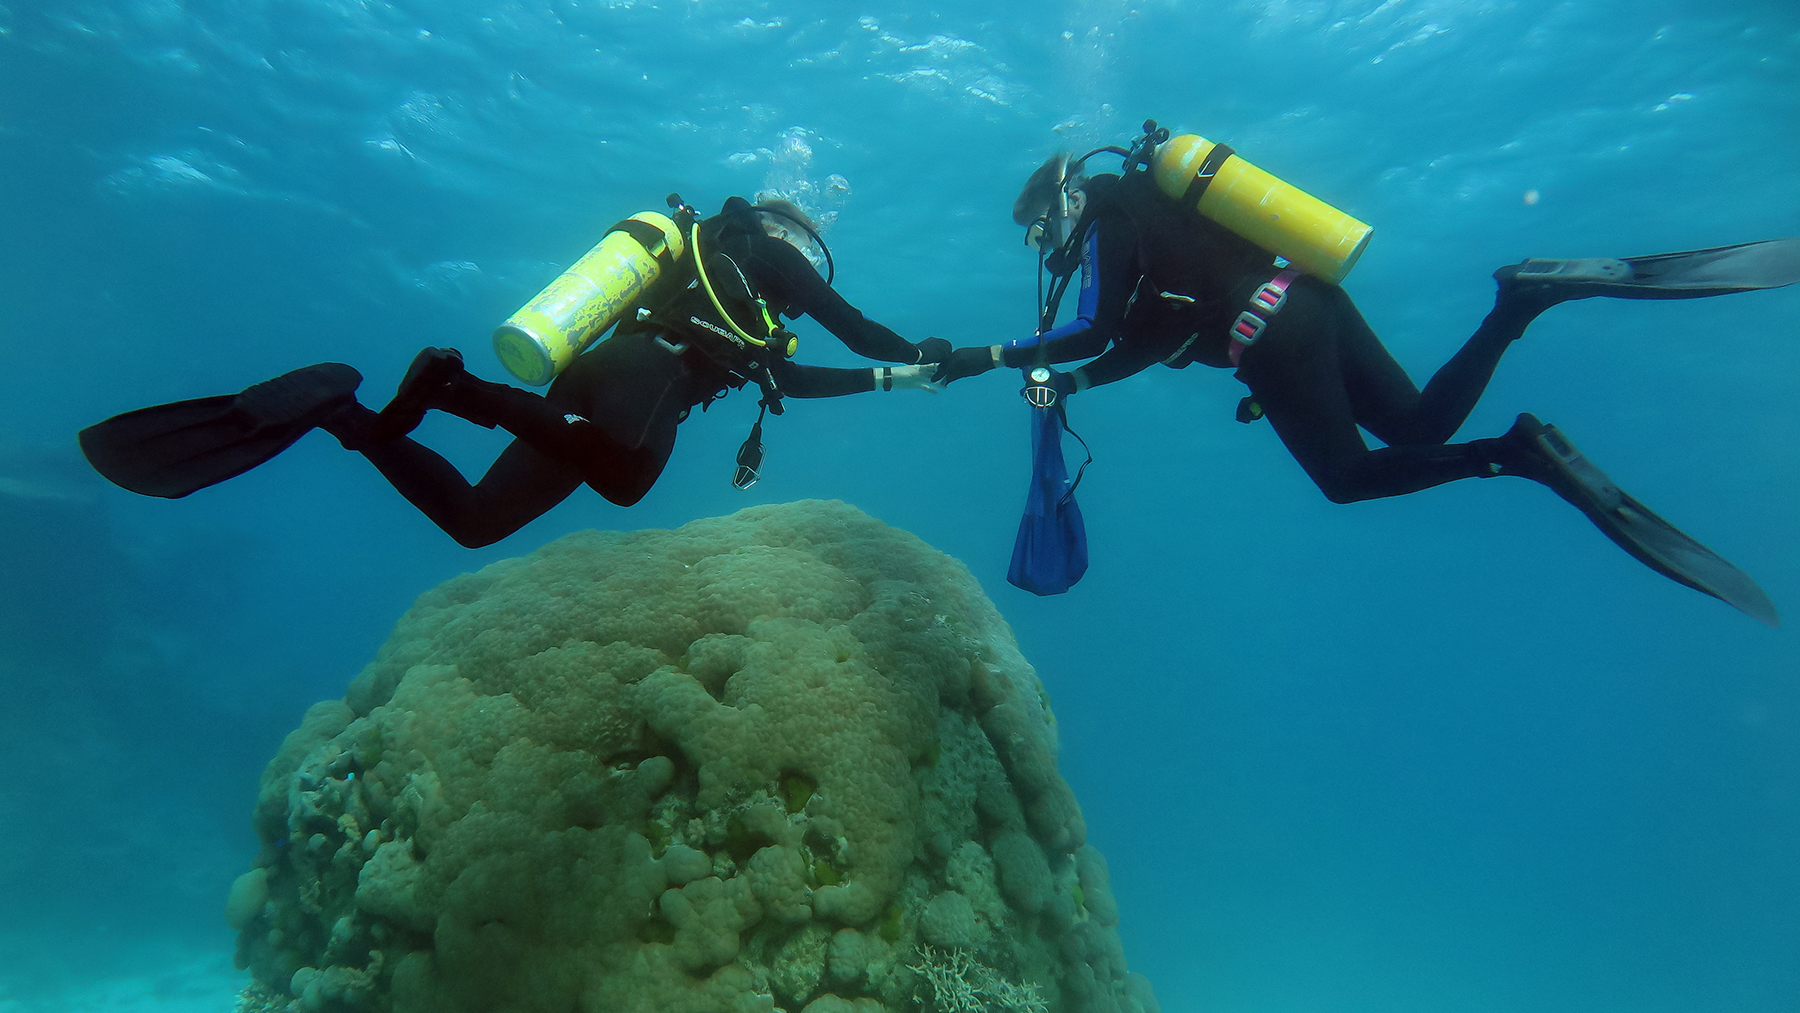 Co-authors Bruce and Kyle Fouke collecting Porites biopsy samples at 10 meters depth at Myrmidon – the most seaward reef of the Great Barrier Reef, located 124 km off the coast of northeastern Australia. Photo courtesy of Bruce Fouke